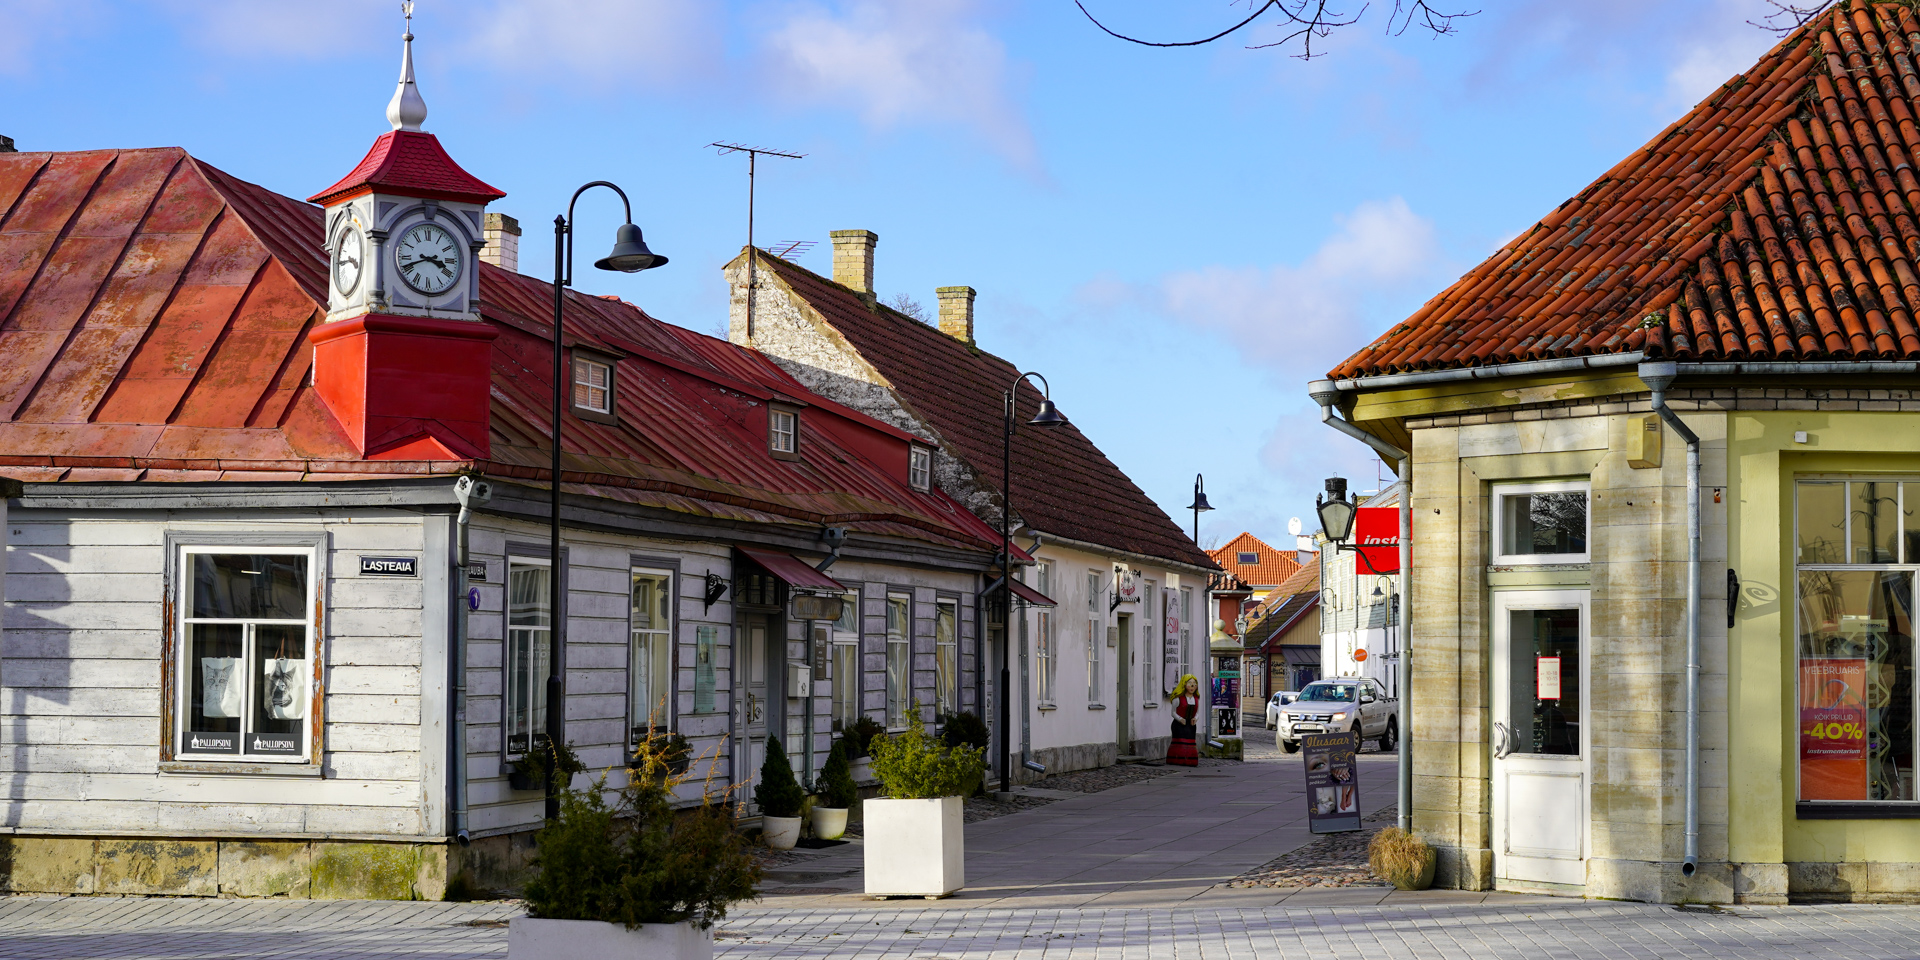 Kuressaare Old Town, Estonia